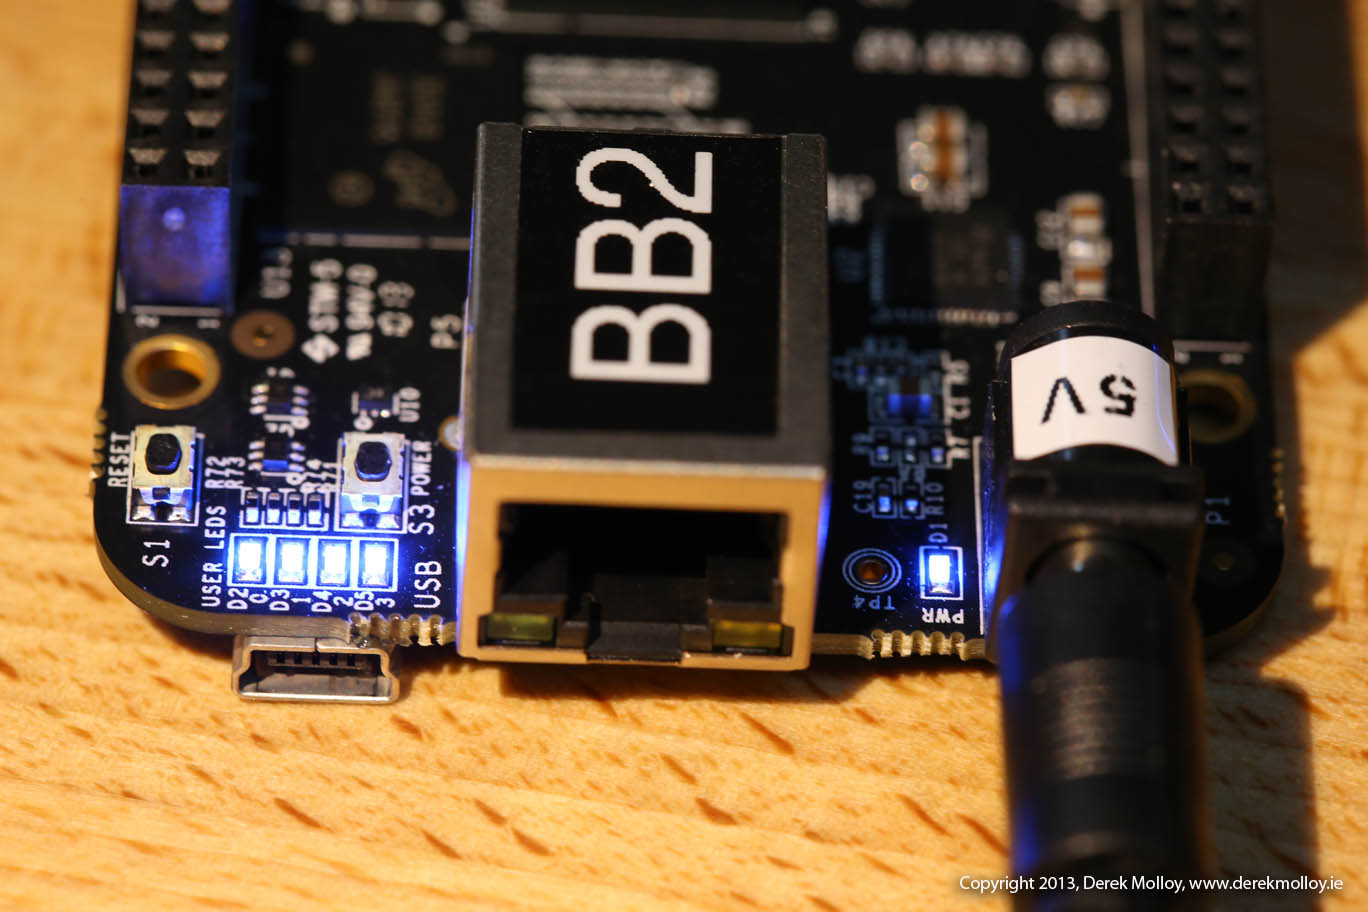 All 4 LEDs are on. Flashing your BeagleBone Black eMMC with Debian